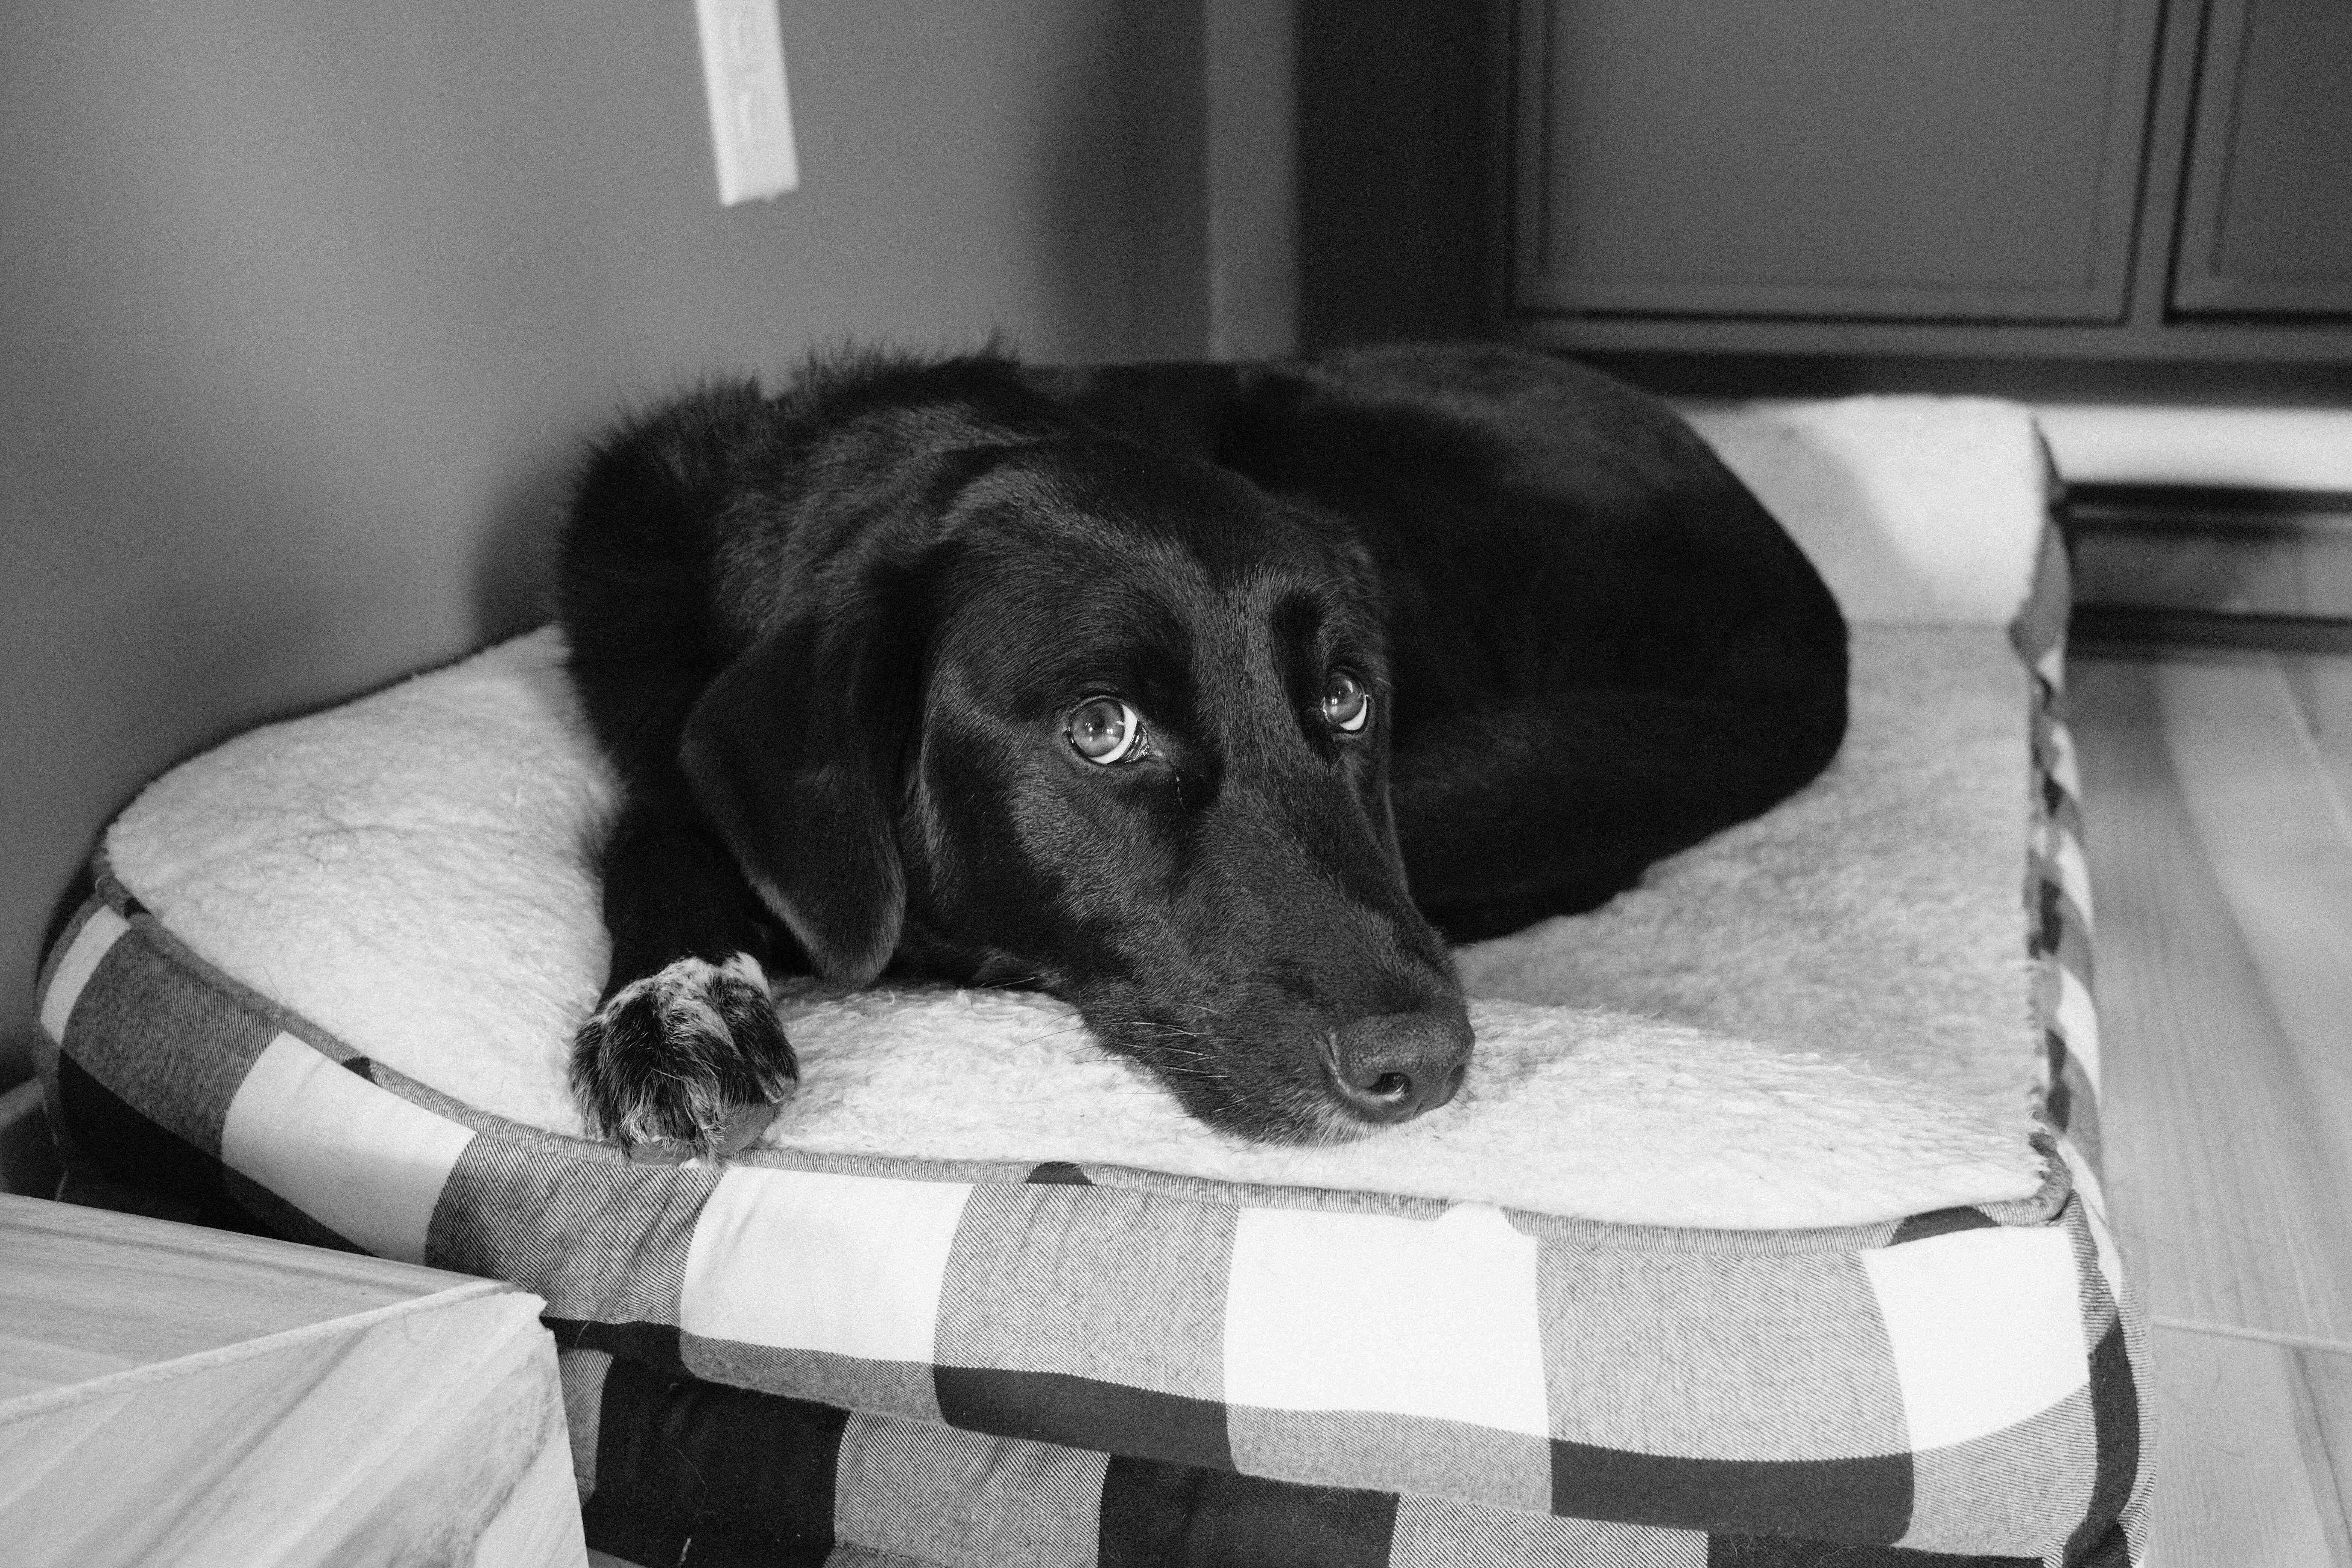 black and white photo of a black dog, laying down and looking up with big white eyes